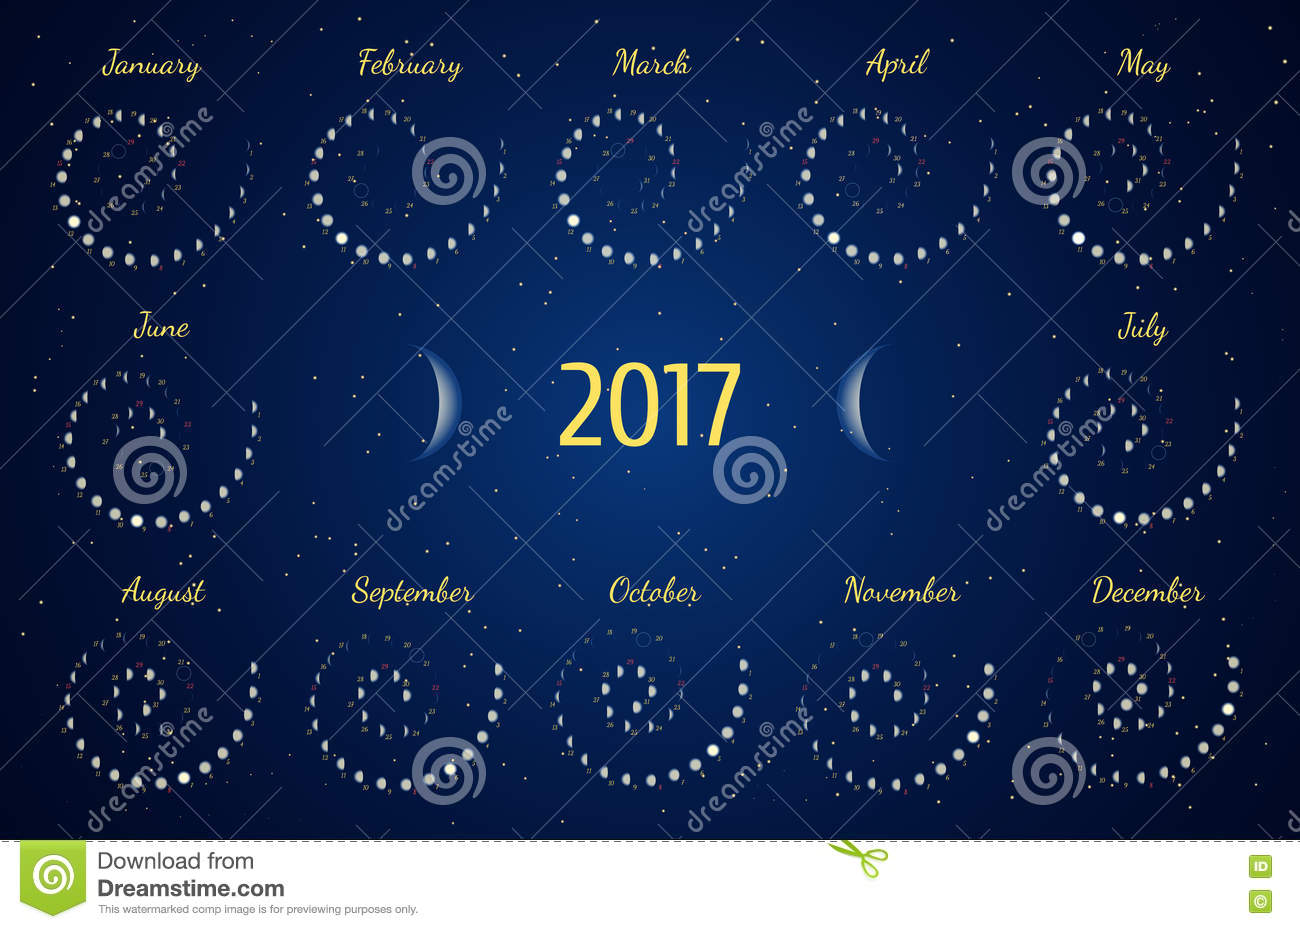 Calendar Design Zodiac : Vector astrological spiral calendar for moon phase